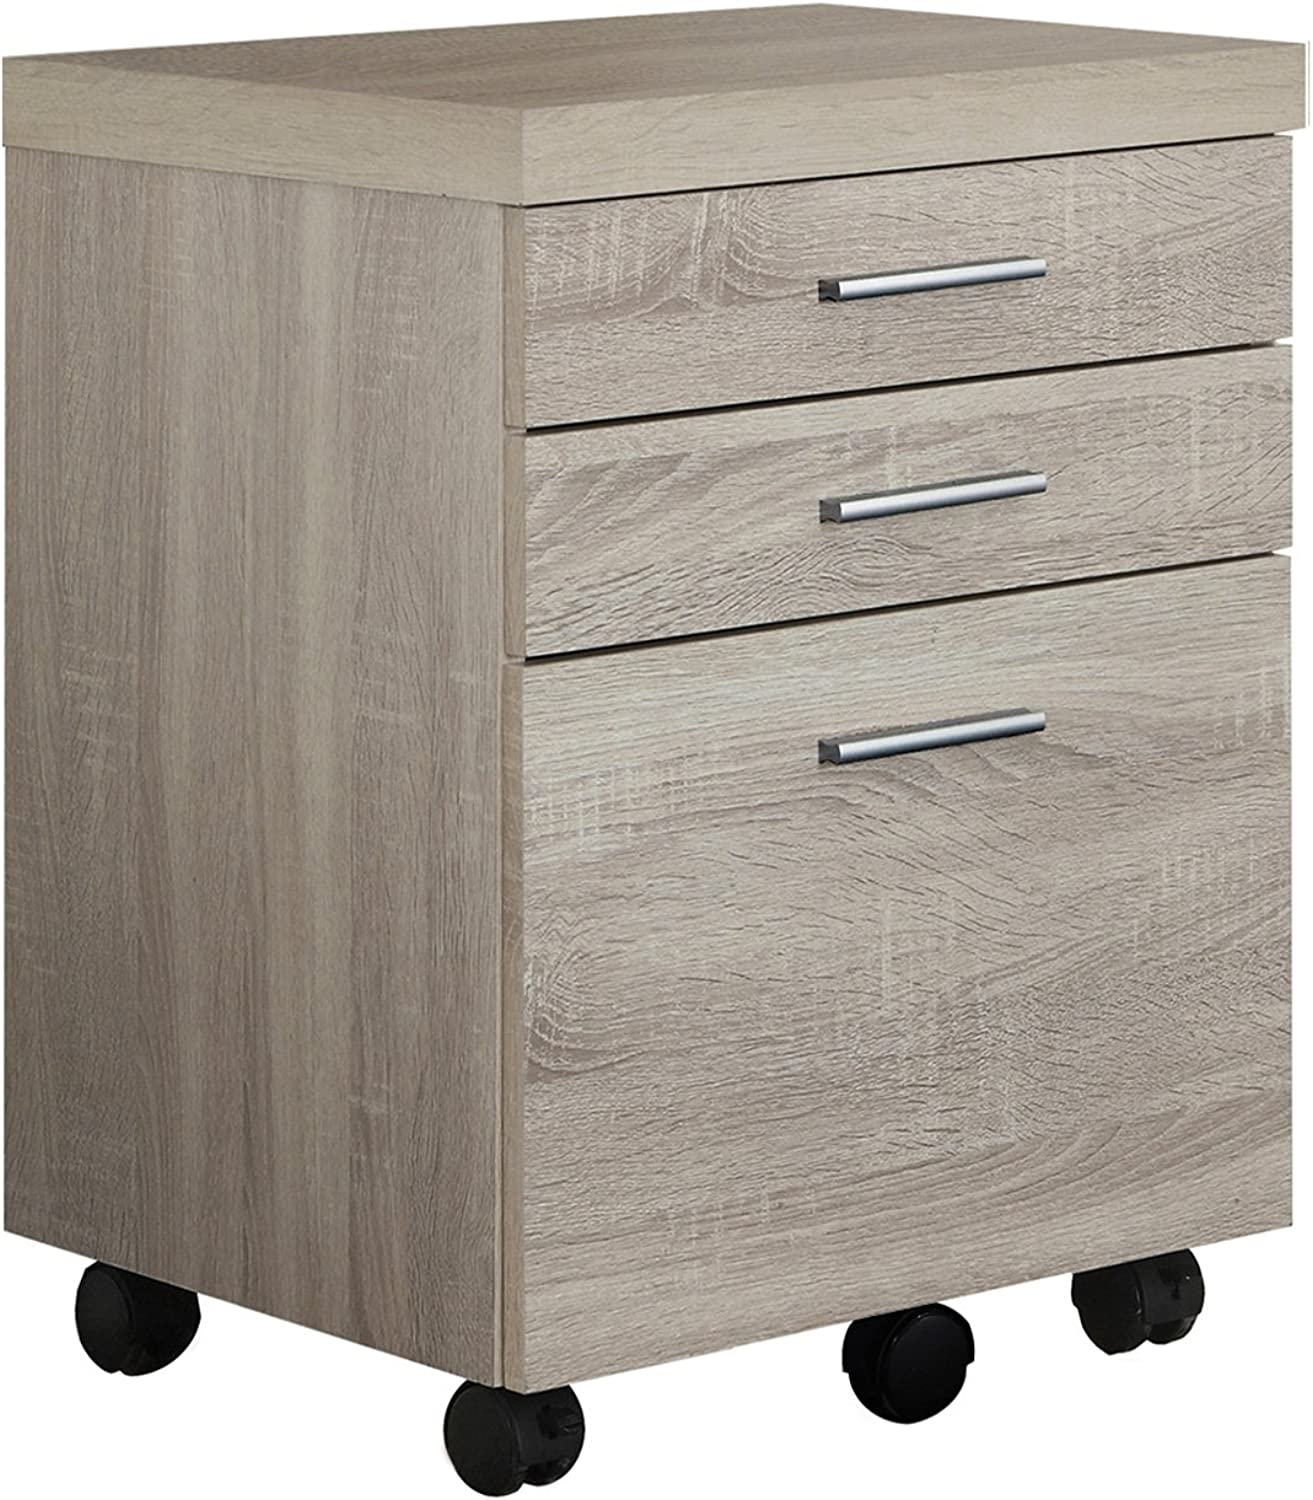 Monarch Specialties Filing Cabinet - 3 Drawer Natural On Castors, White